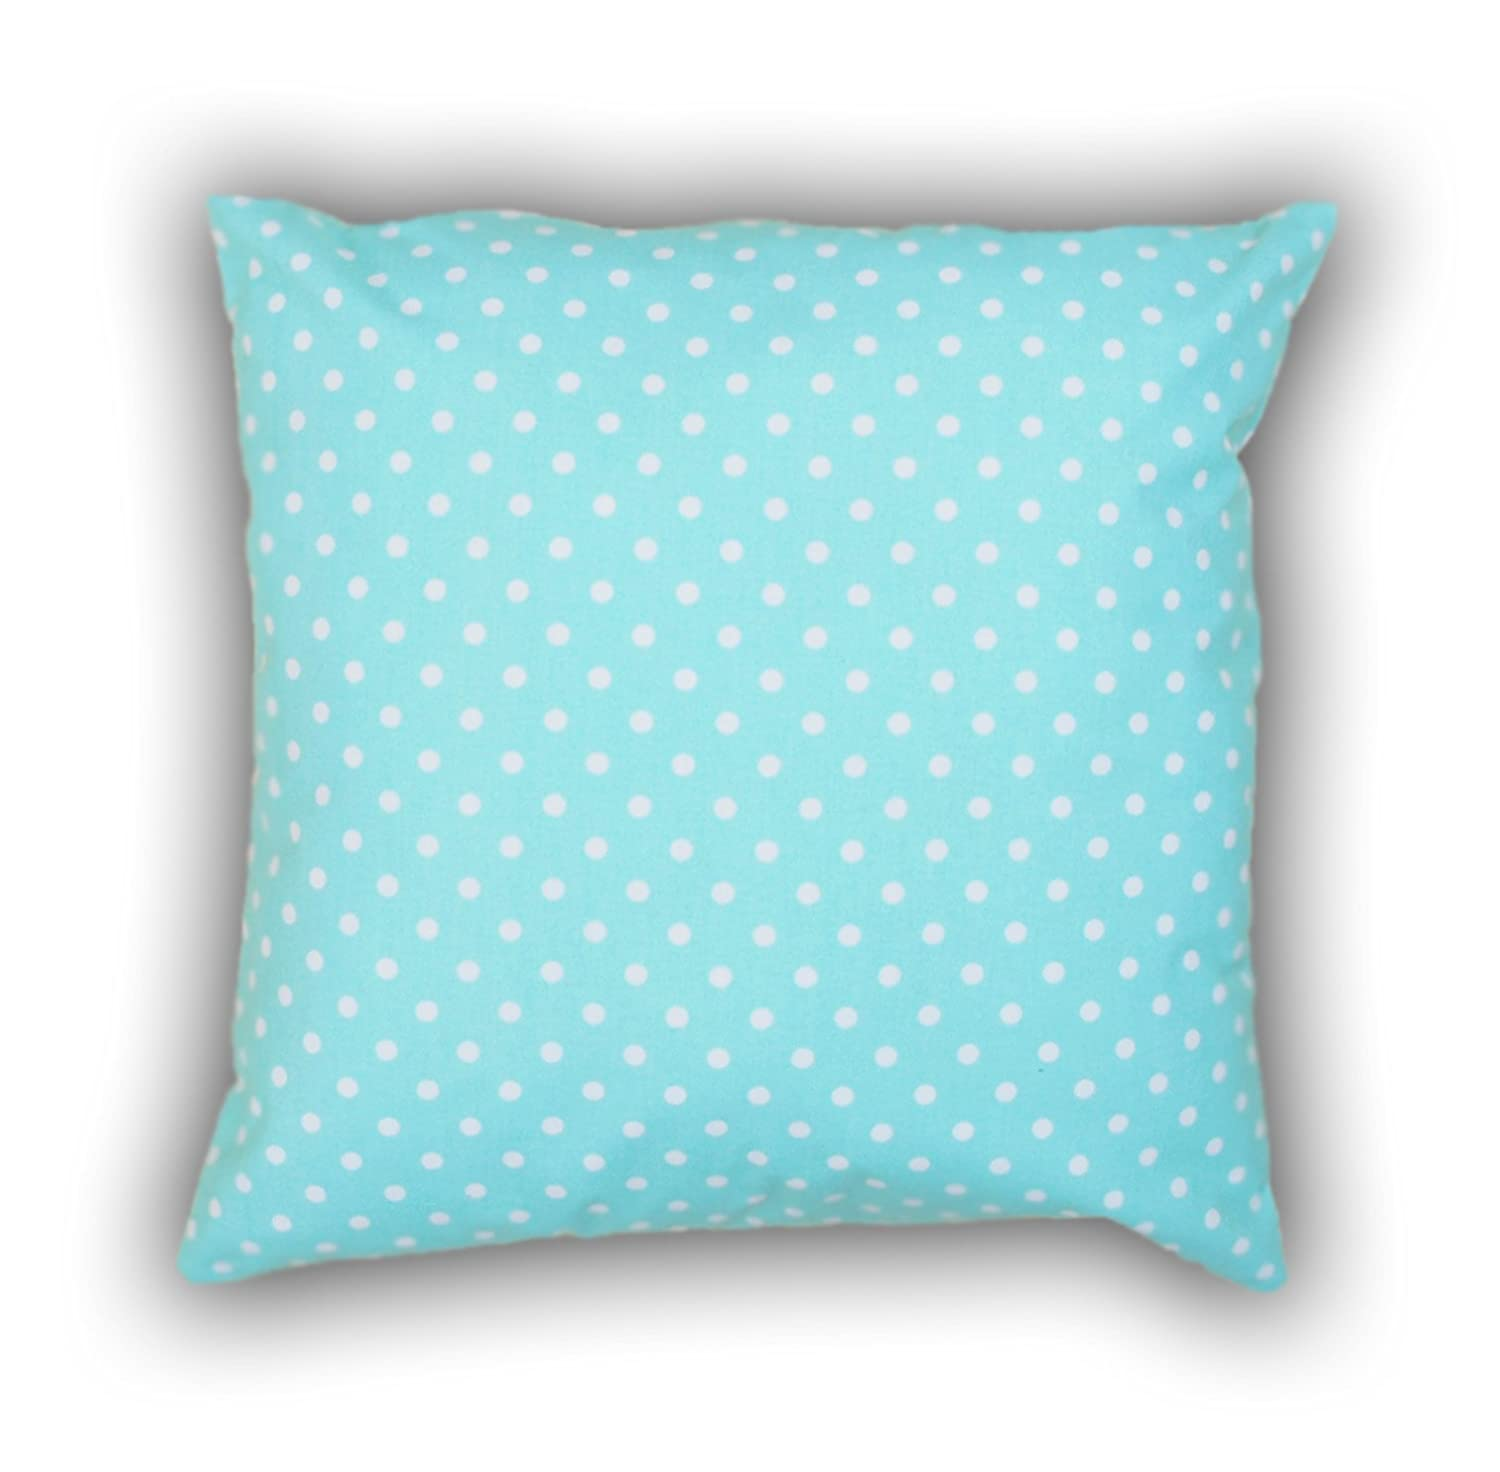 Amilian® Handcrafted Decorative Art-Deco Polka-Dots Print Turquoise/White 100% Cotton Premium Quality Durable Throw Cushion Cover Pillowcase Only 80 cm x 80 cm